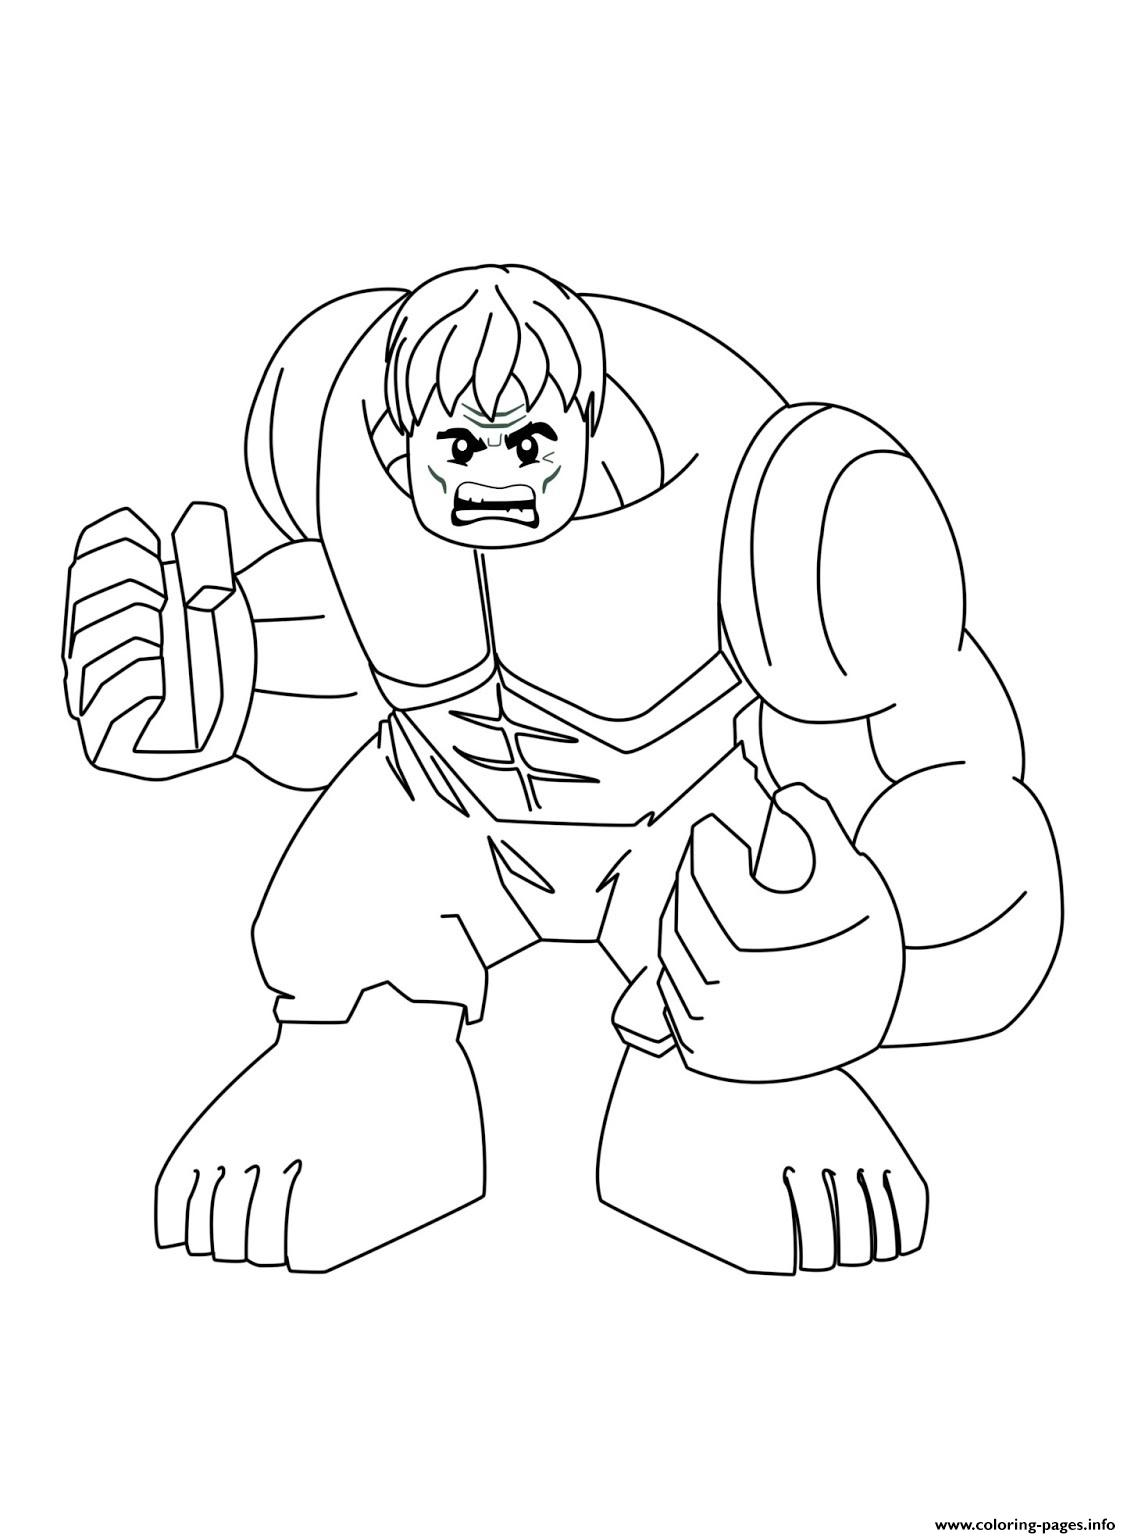 Lego Marvel Super Hulk Coloring Pages Printable